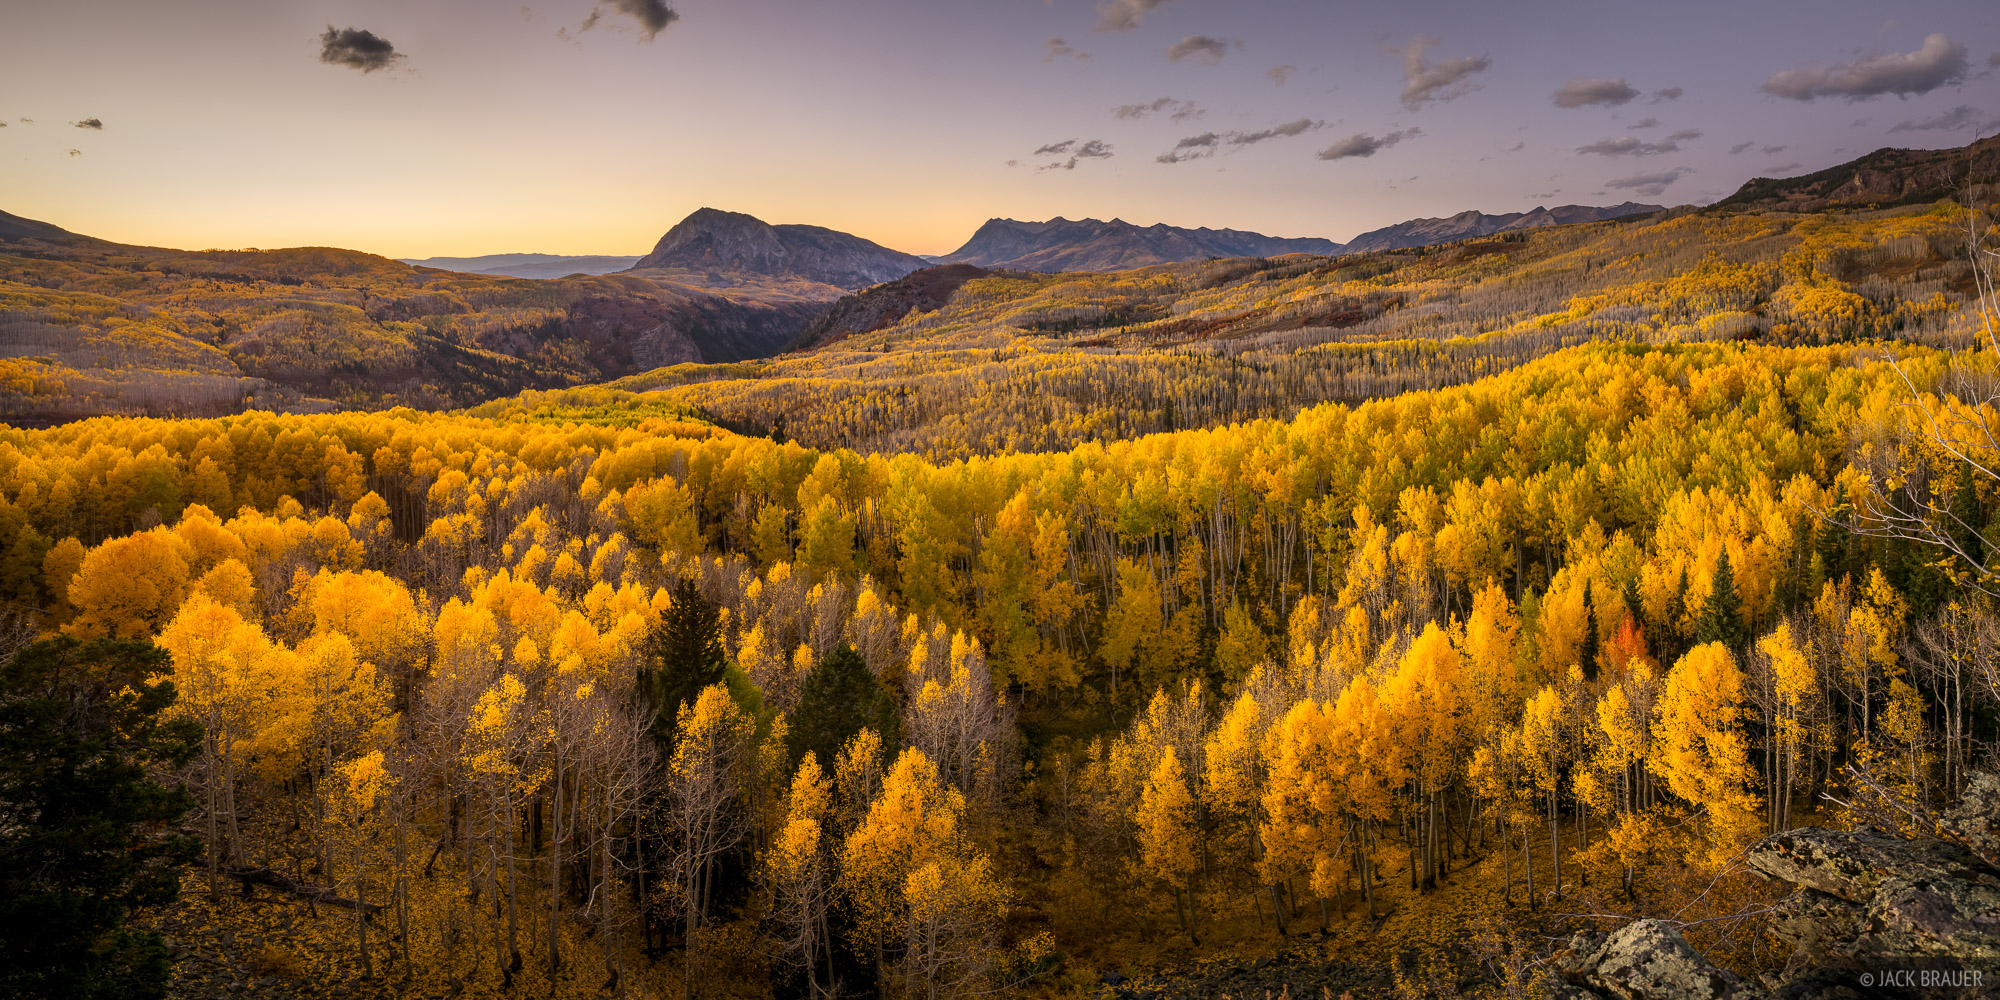 Colorado, Elk Mountains, Kebler Pass, October, Ruby Anthracite Creek, Marcellina Mountain, Raggeds Wilderness, aspens, photo